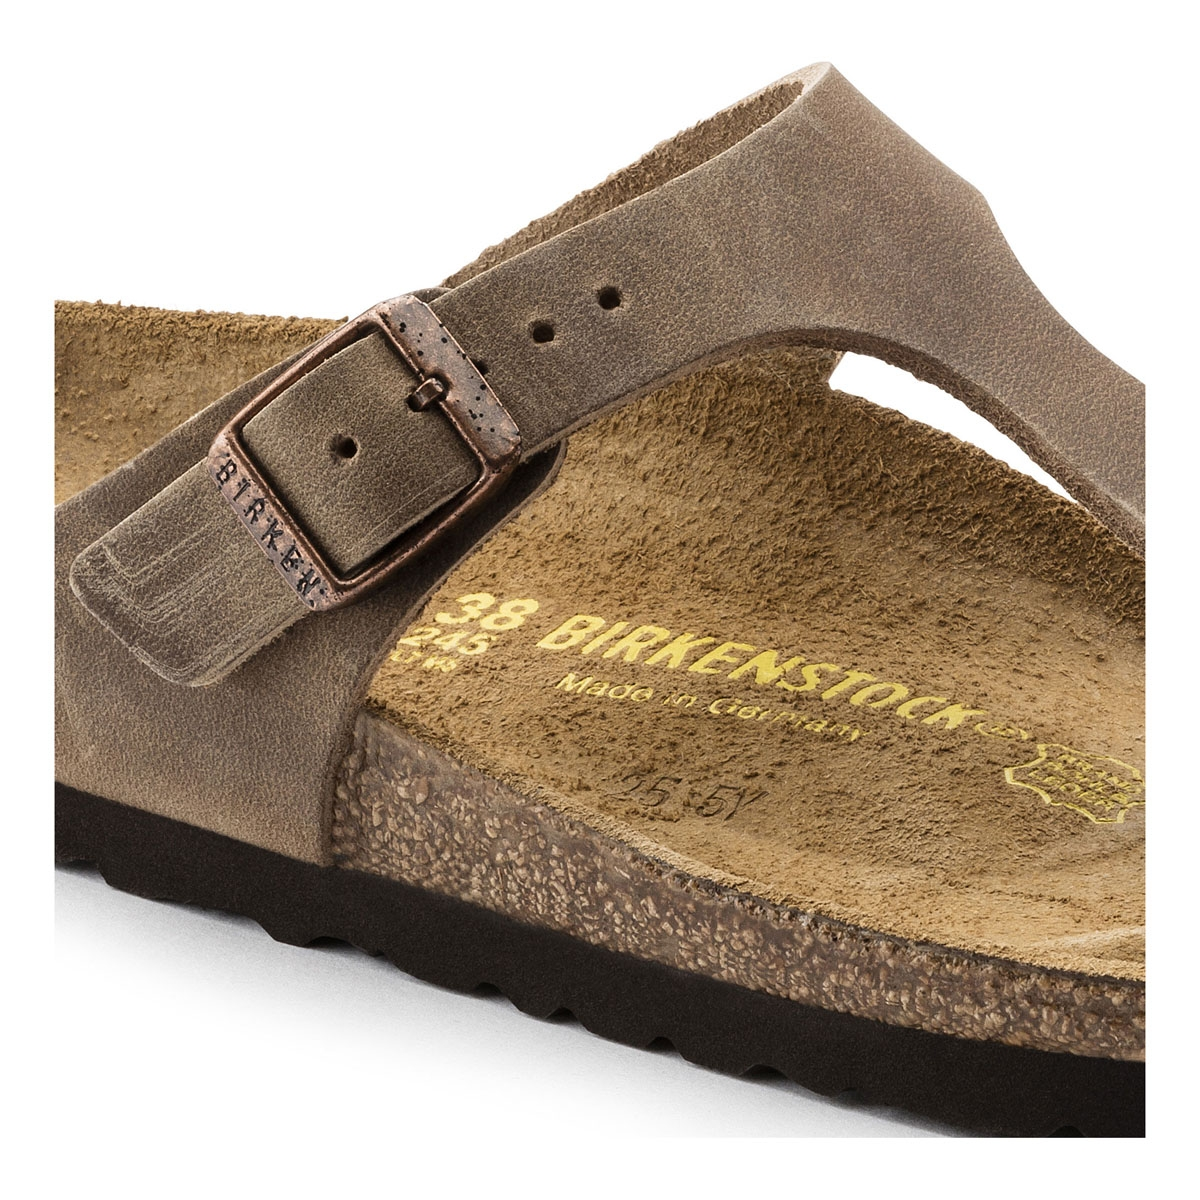 060a0d82d14 ... Image of Birkenstock Gizeh Oiled Leather Sandals (Women s) - Tabacco  Brown